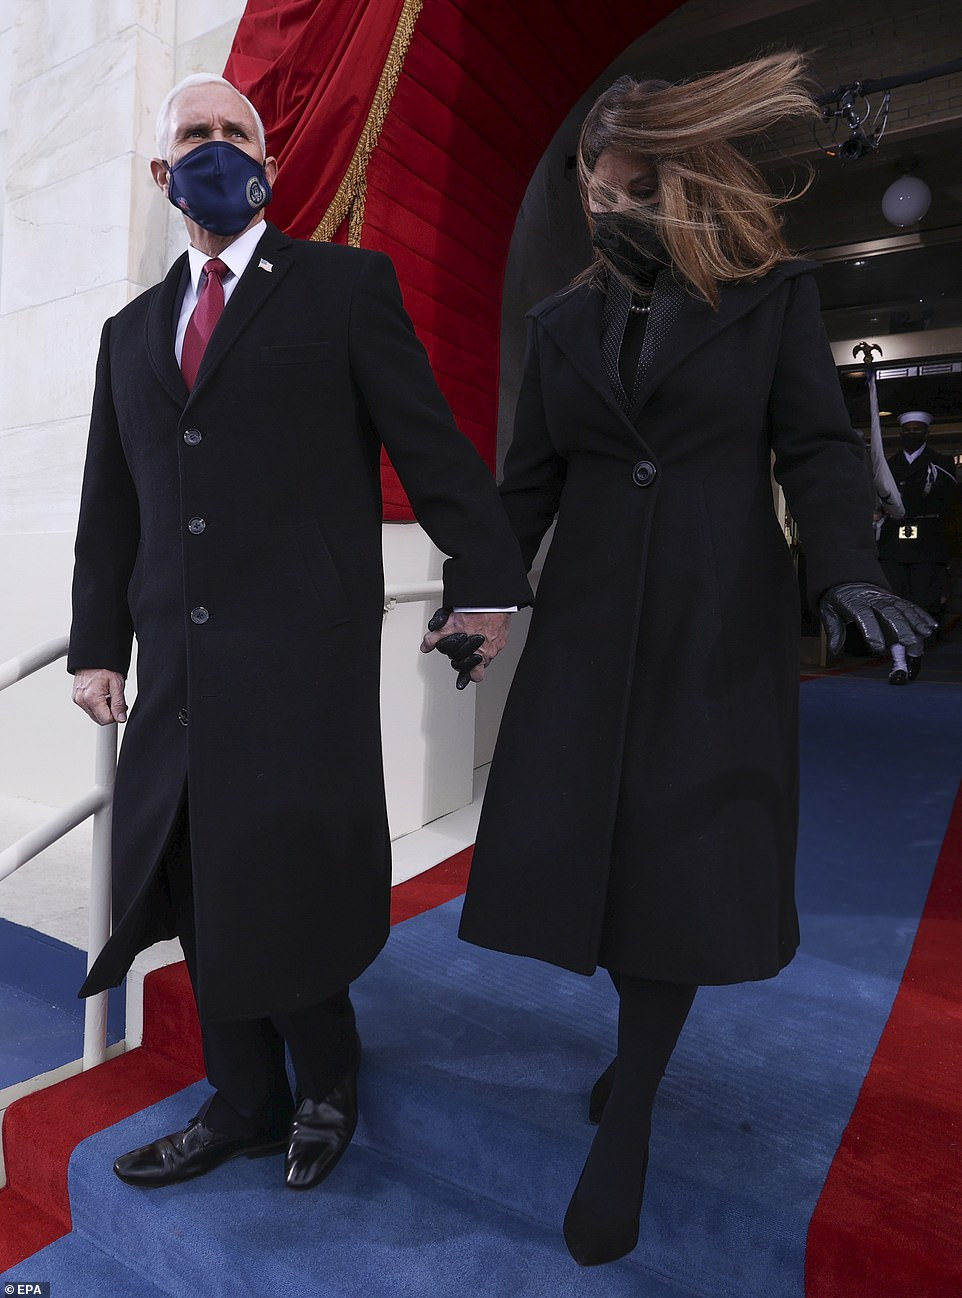 Breezy: Mrs. Pence's hair whipped in the wind as she arrived at the inauguration with her husband